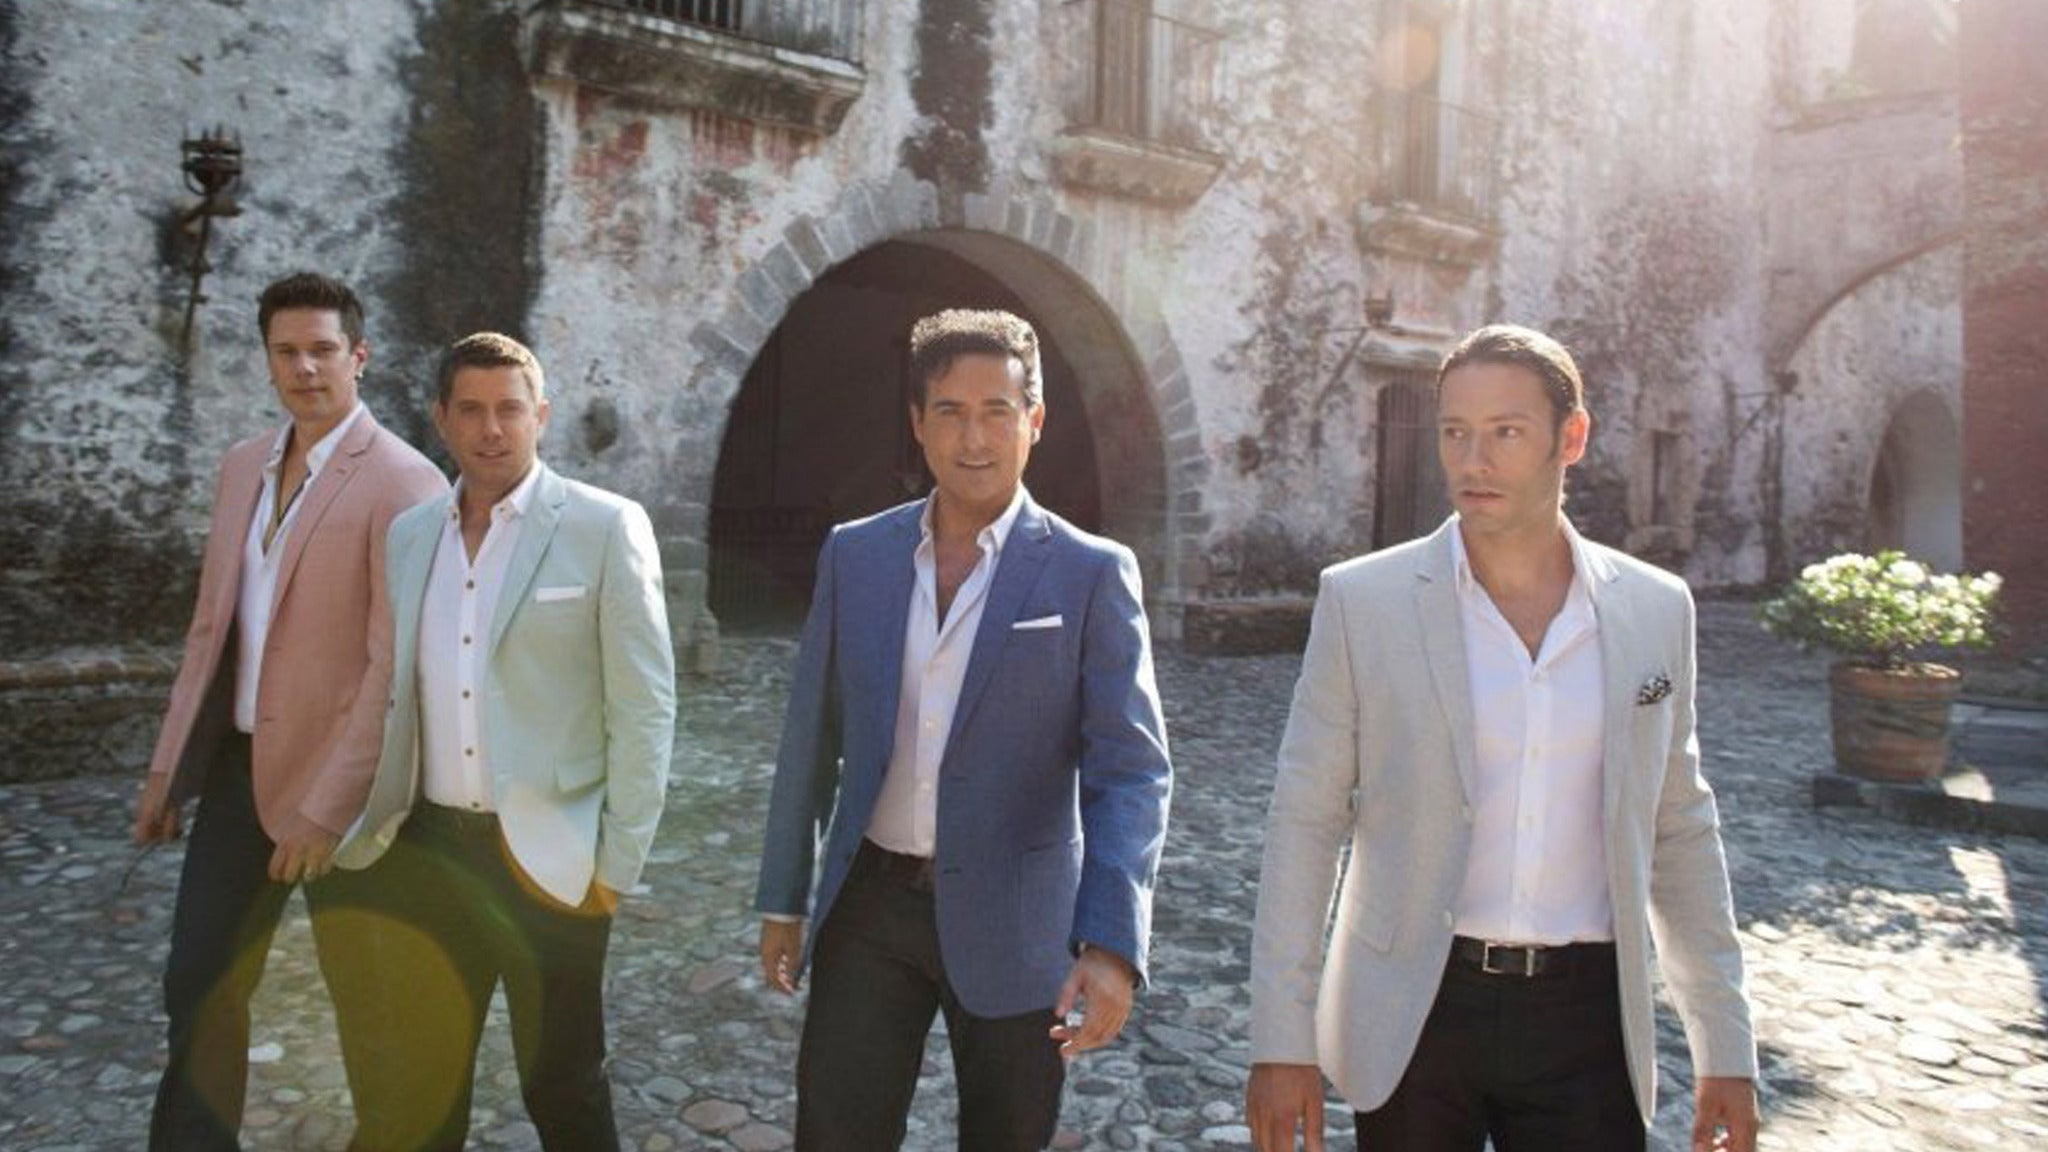 IL DIVO - AMOR & PASION at Rosemont Theatre